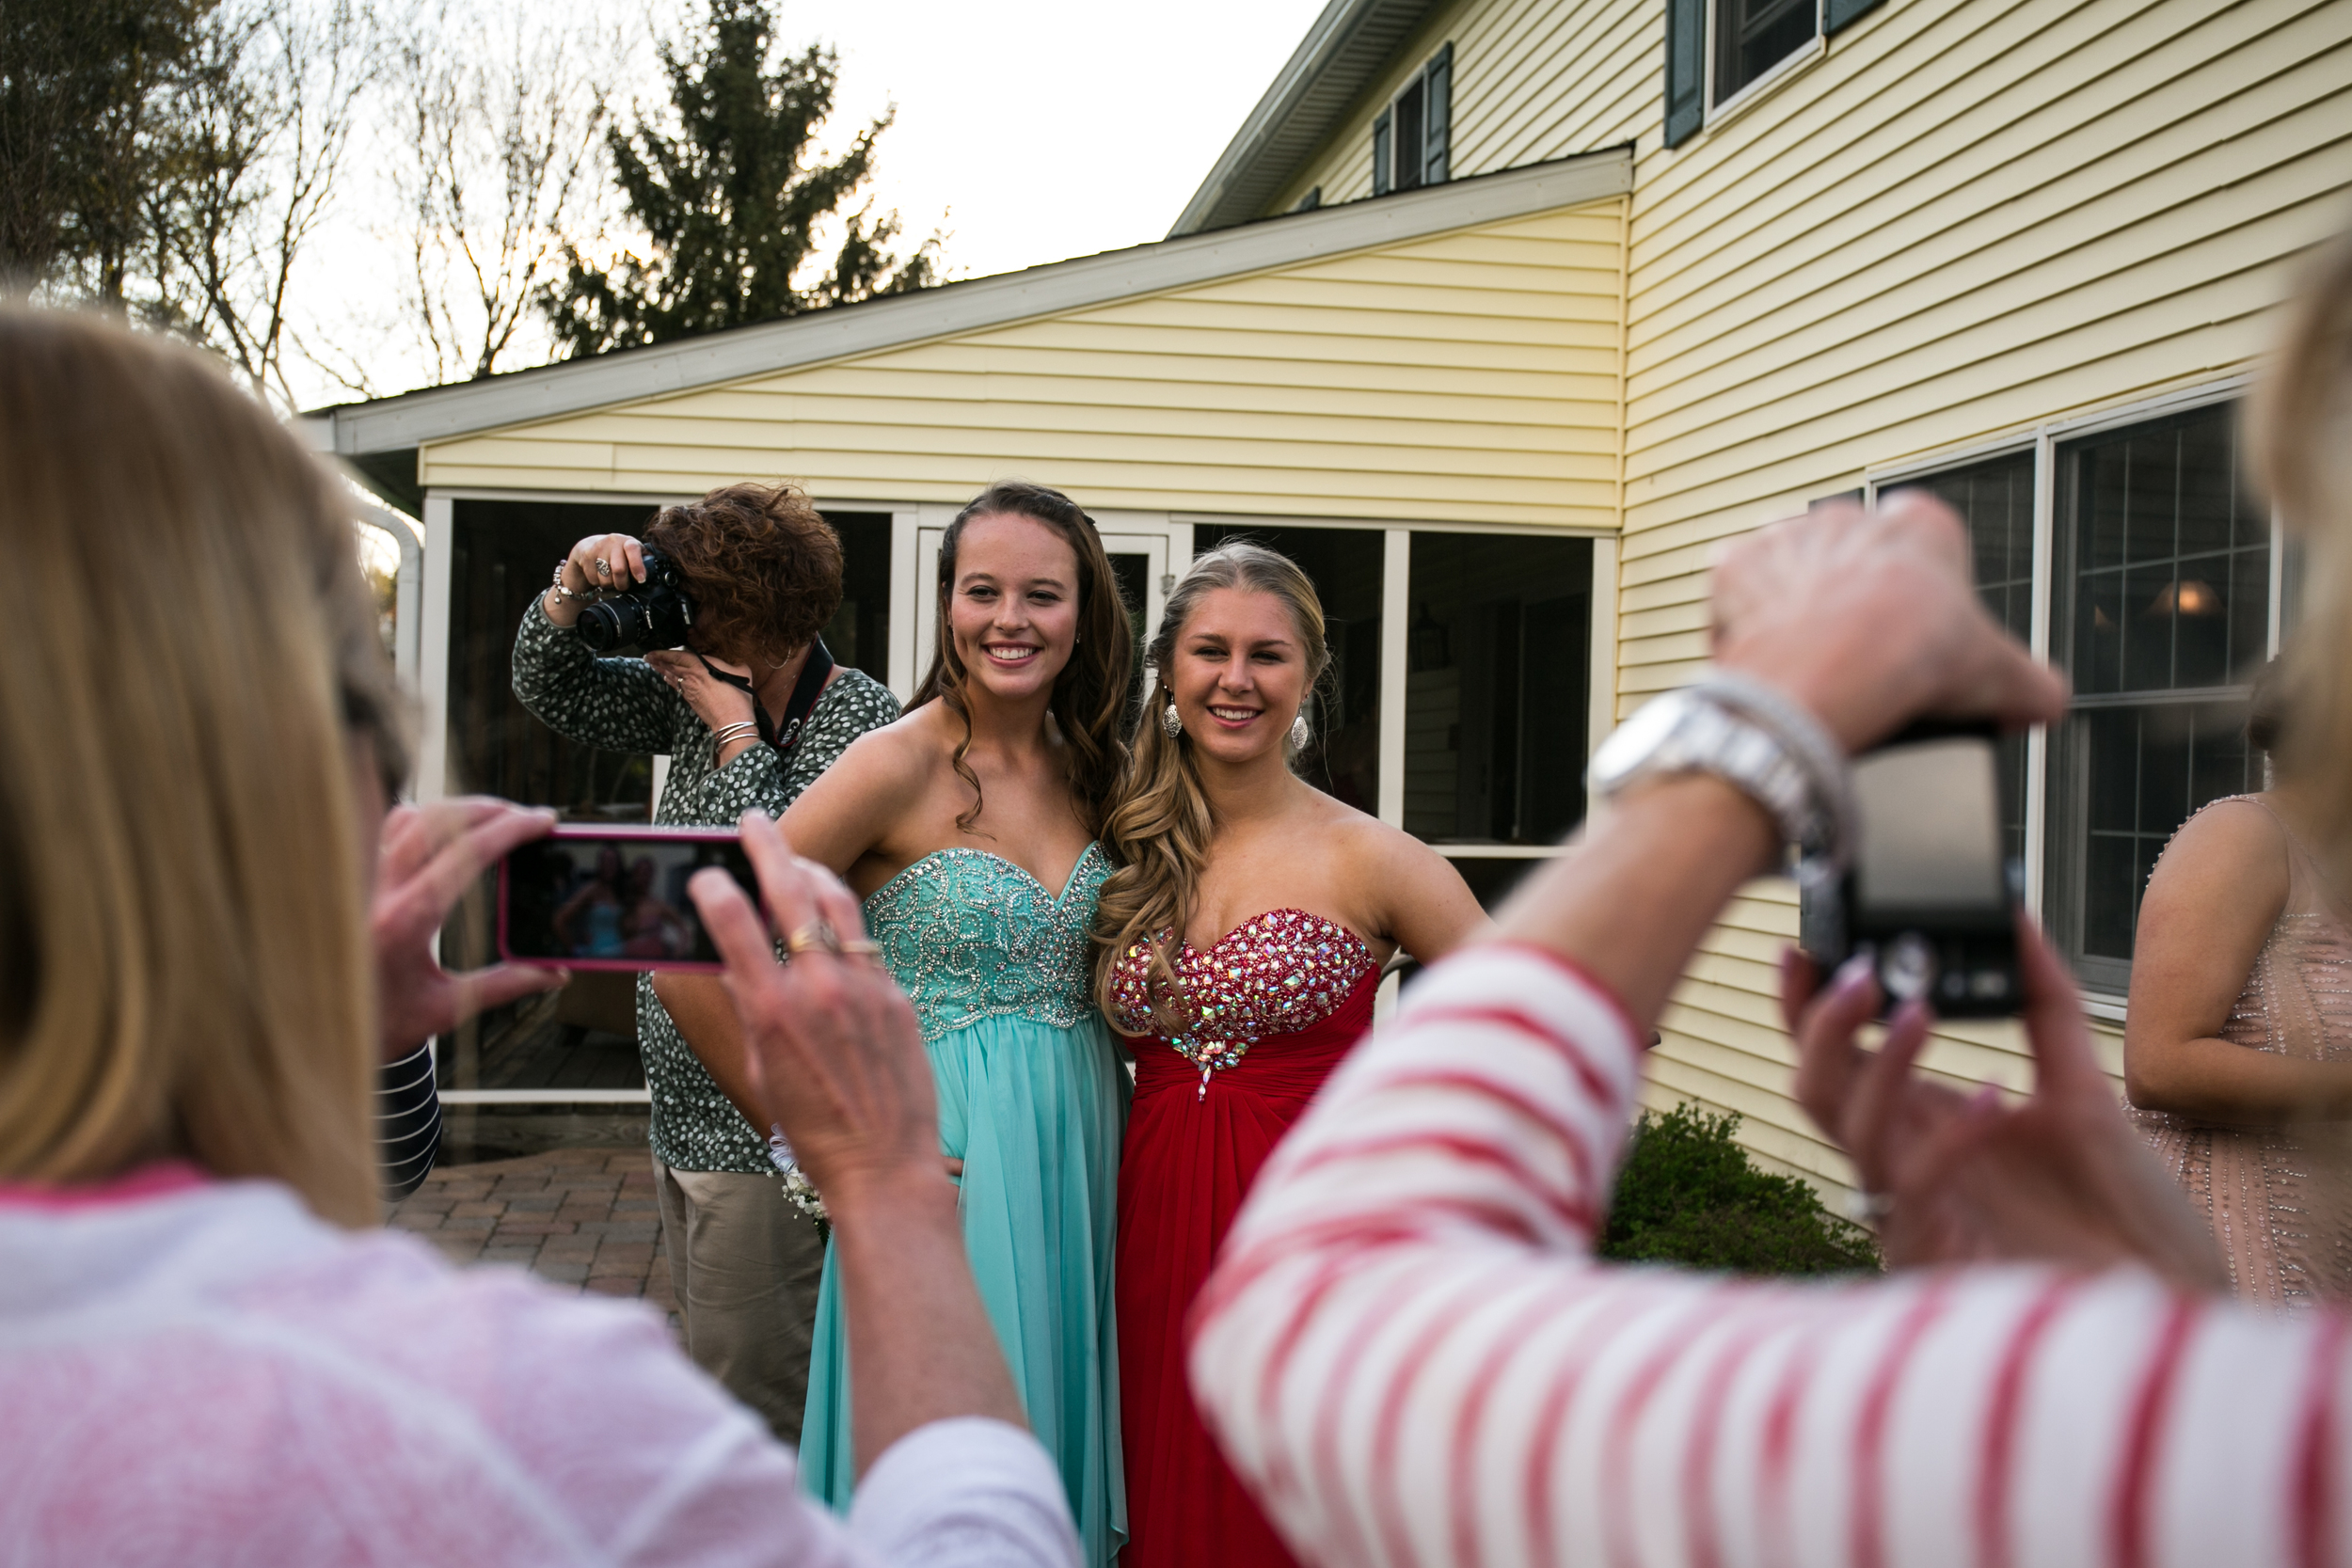 Mount-De-Sales-Pre-Prom-May-2014-66.jpg